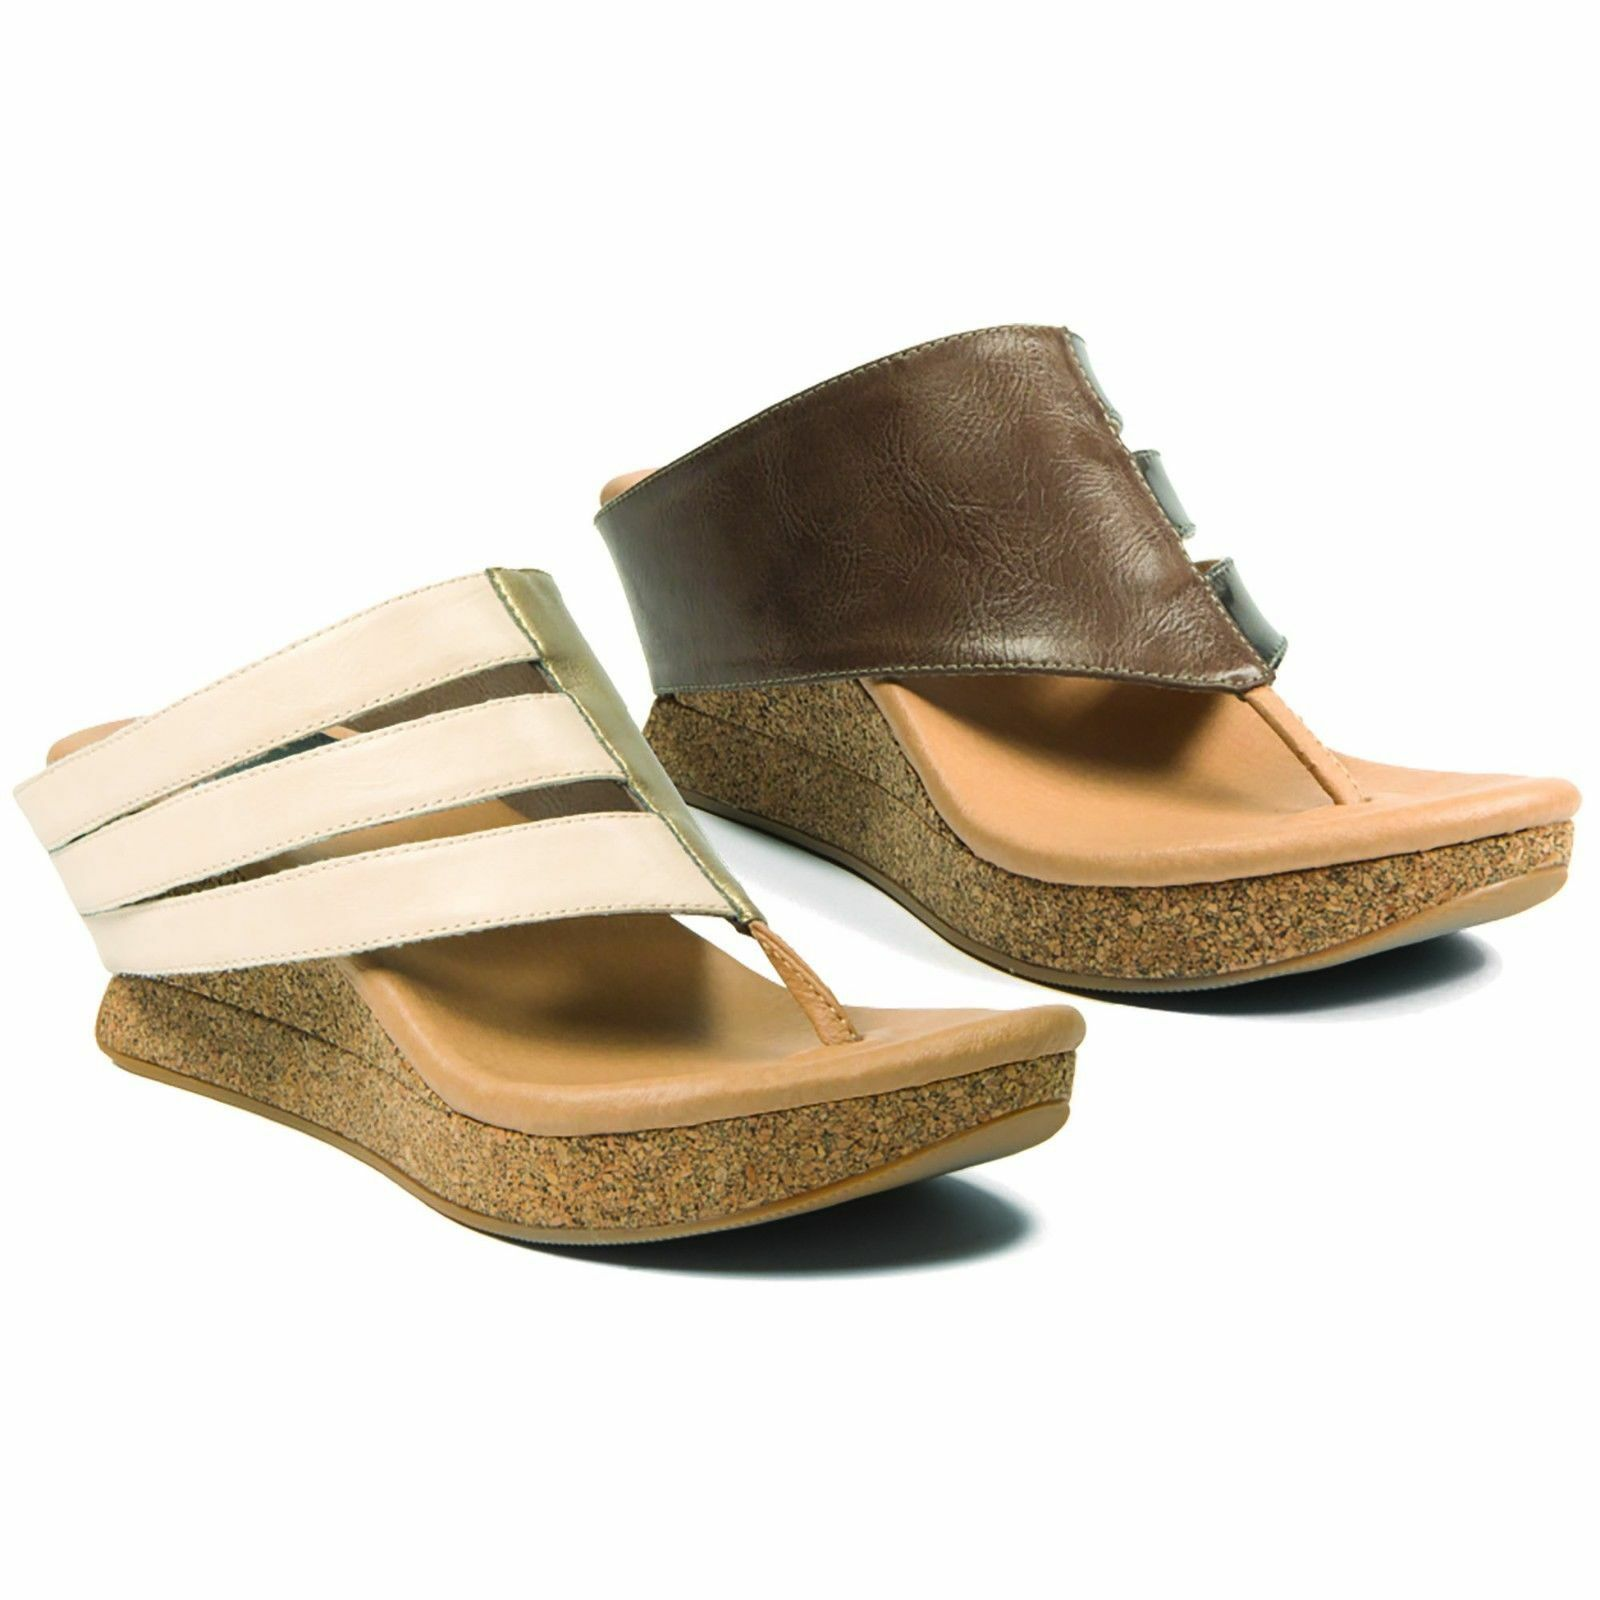 New MODZORI Sabra Low Wedge Reversible Sandals Sandals Sandals in Cream Au Ag Taupe in Taille 12 4c382a